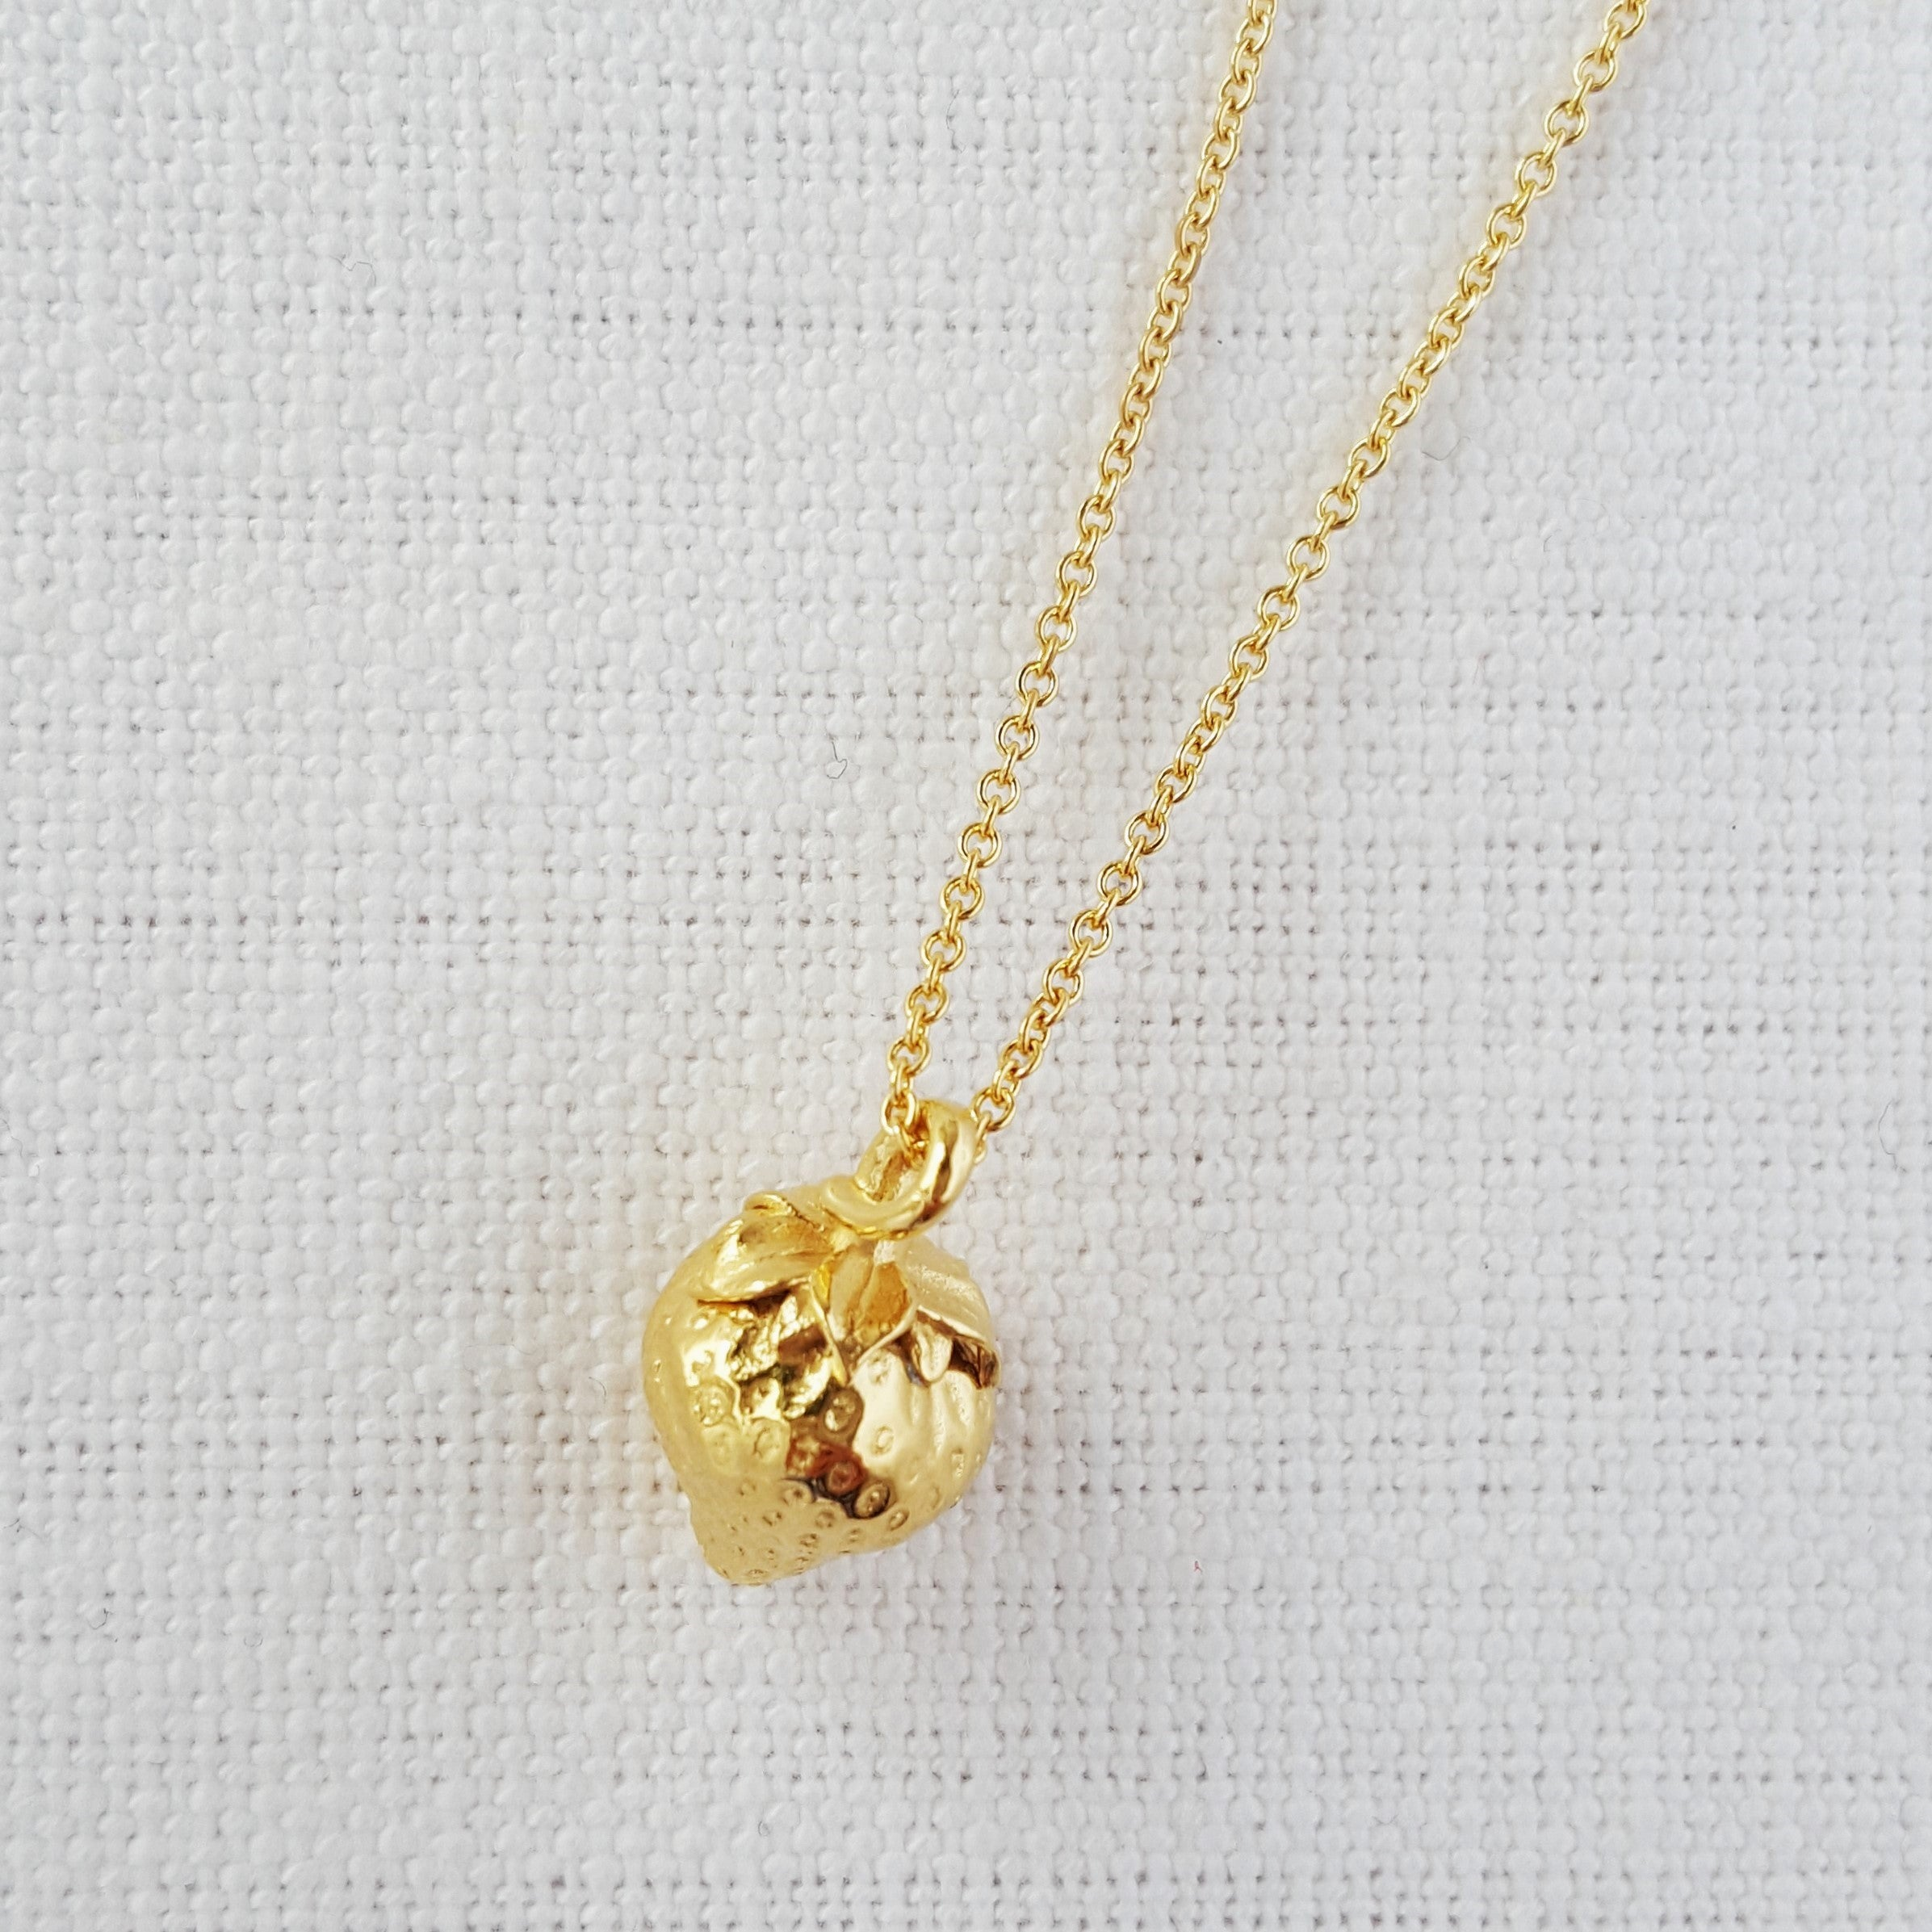 Gold Strawberry necklace Pendant